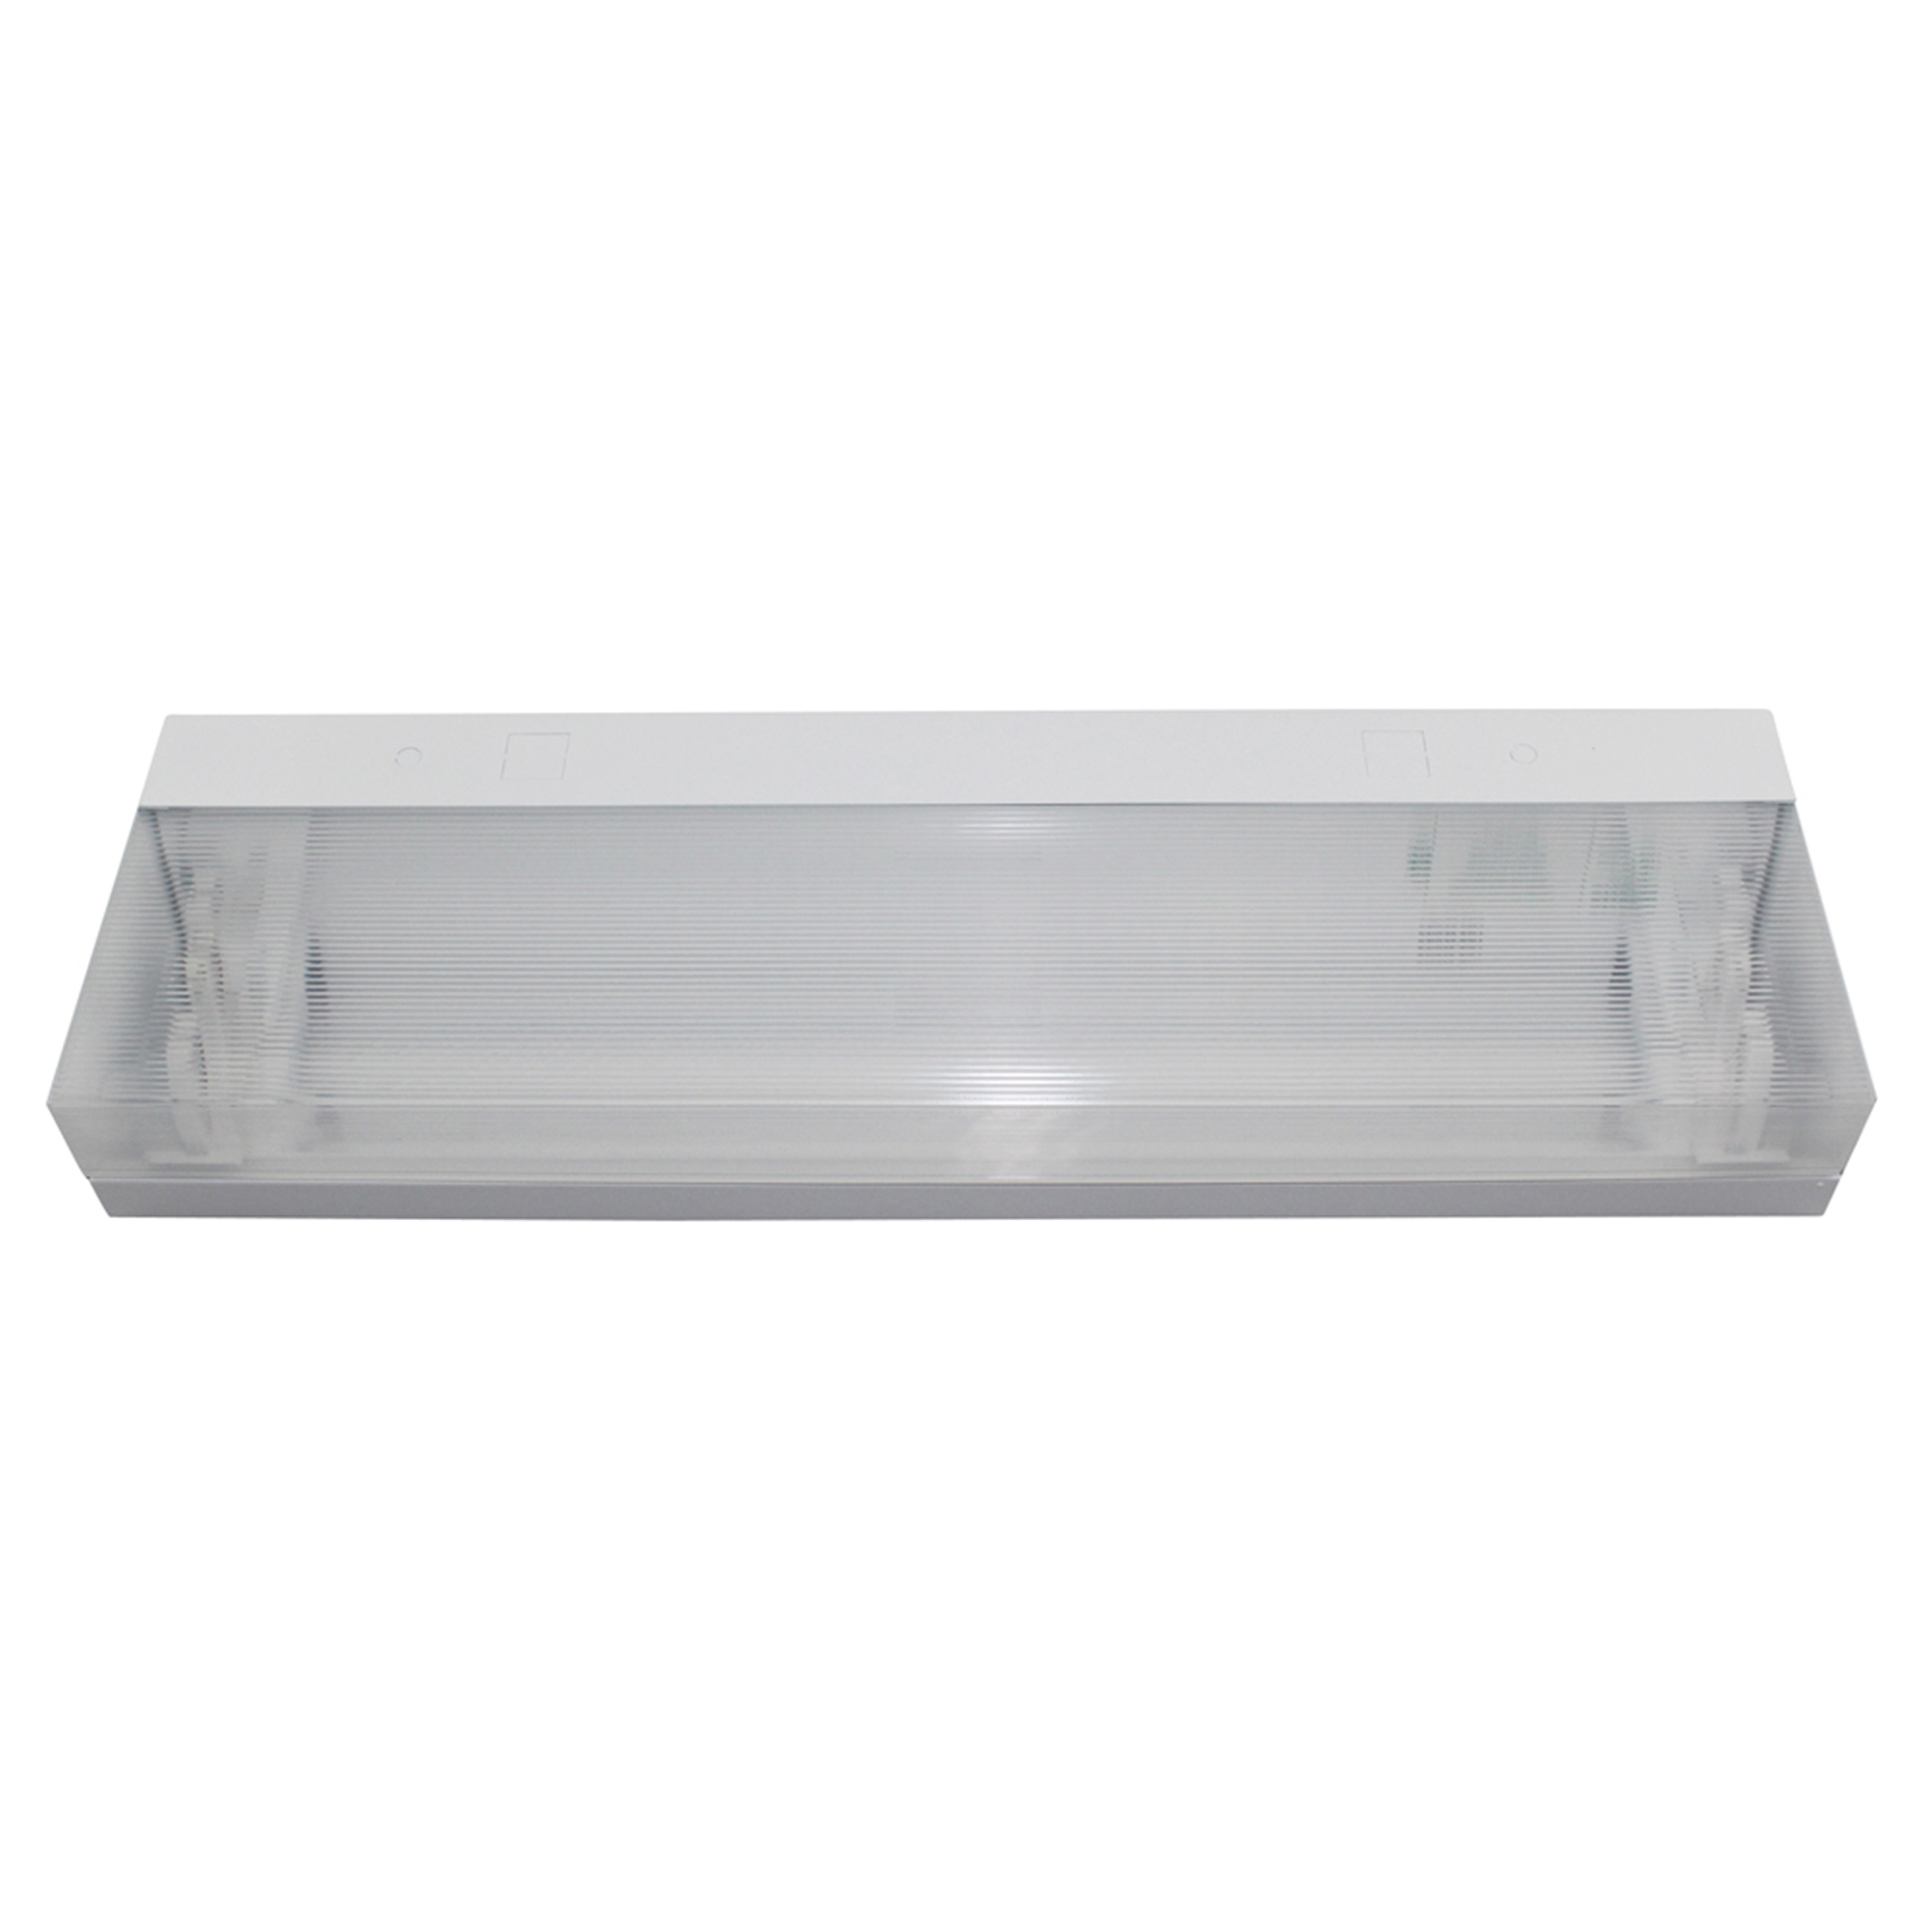 Wall Mount Fluorescent Light Fixtures - Kichler 10688pn Freeport Collection 2 Light Wall Mount ...